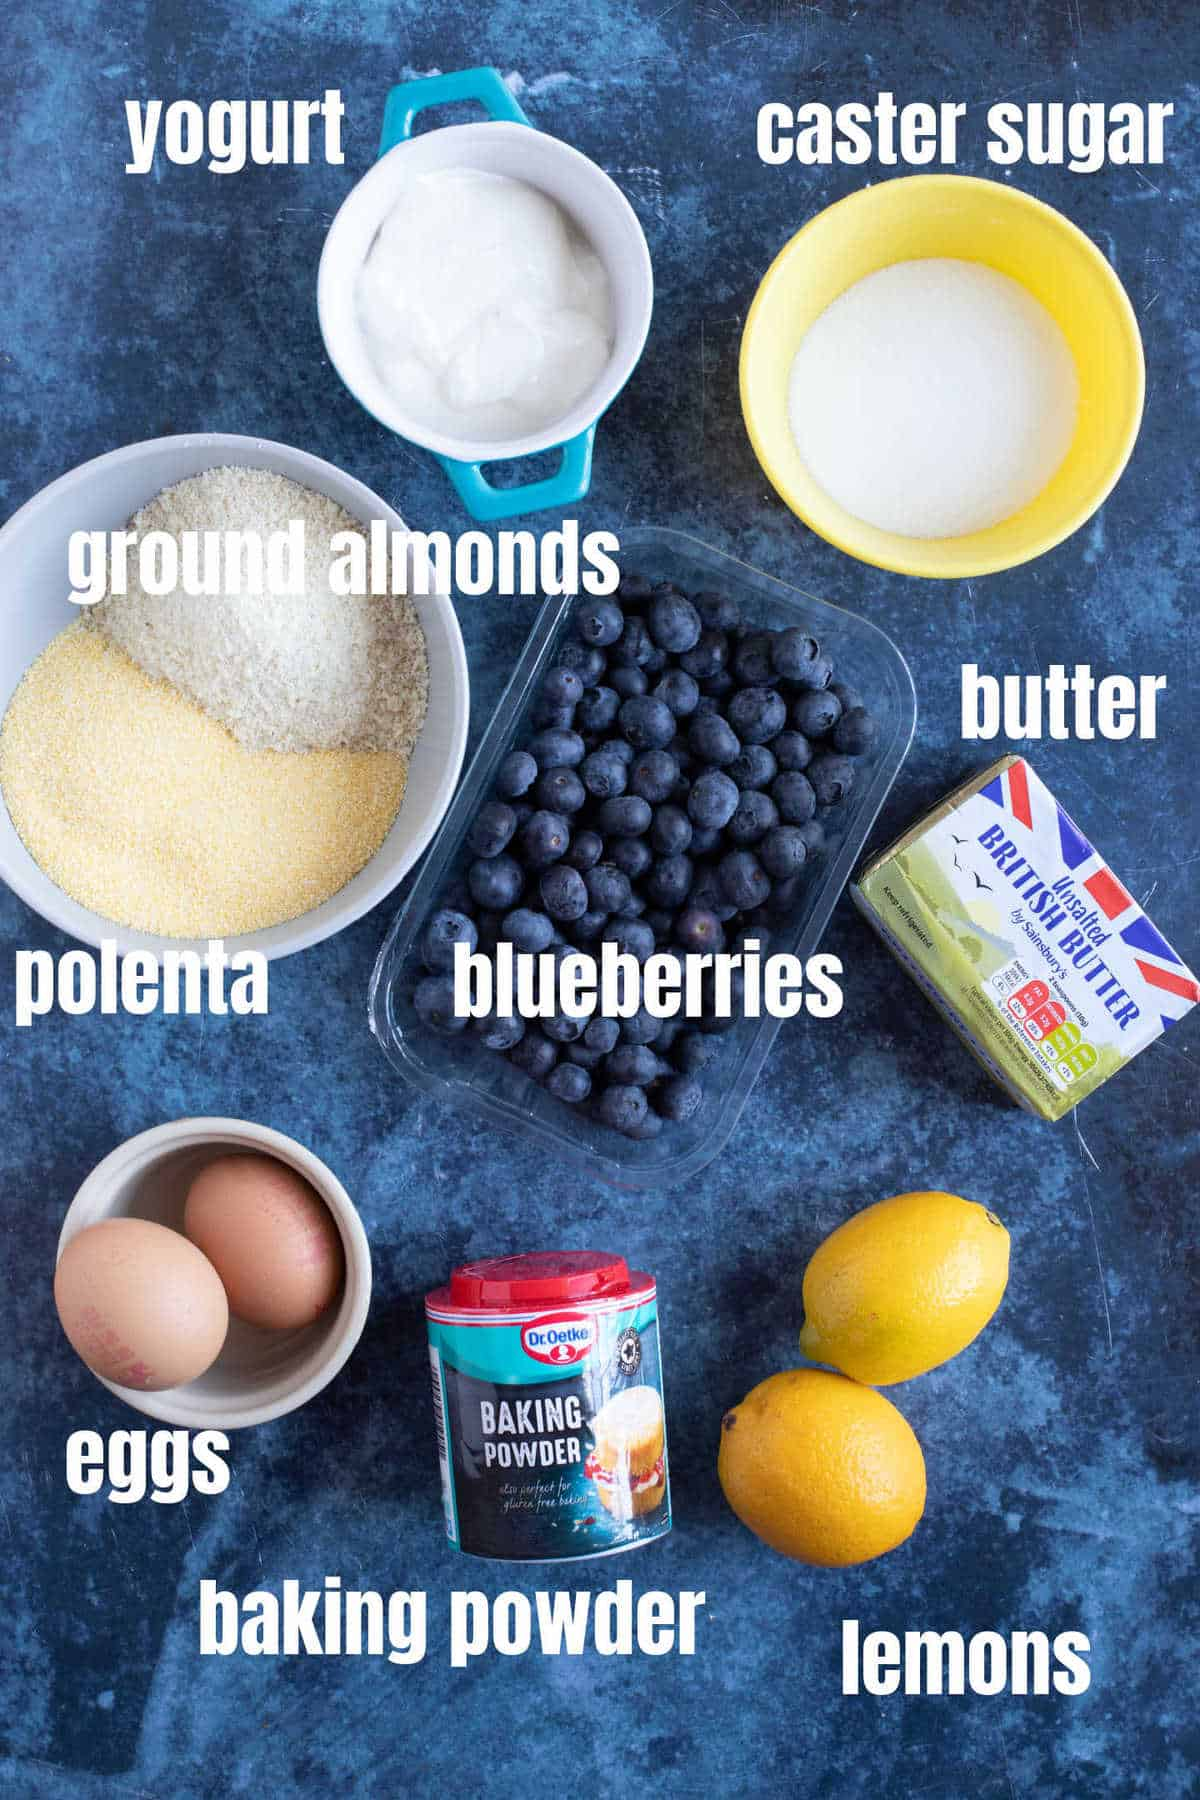 Ingredients for making the lemon polenta cake.